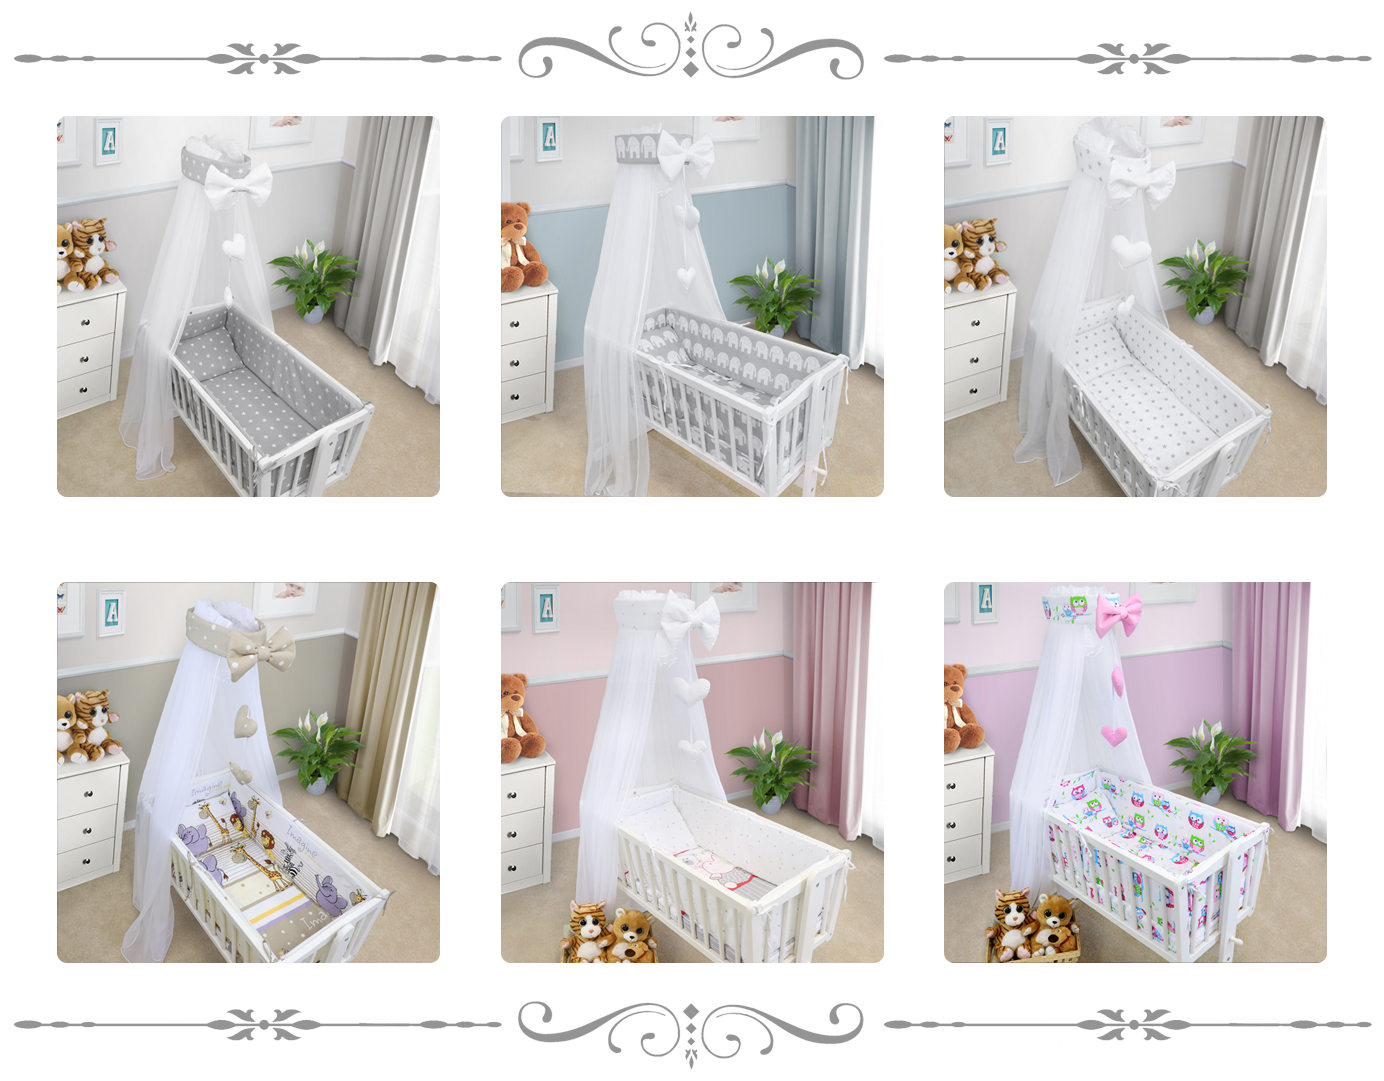 baby bettw sche 80 x 70cm babyset f r kinderwagen wiege stubenwagen baumwolle ebay. Black Bedroom Furniture Sets. Home Design Ideas